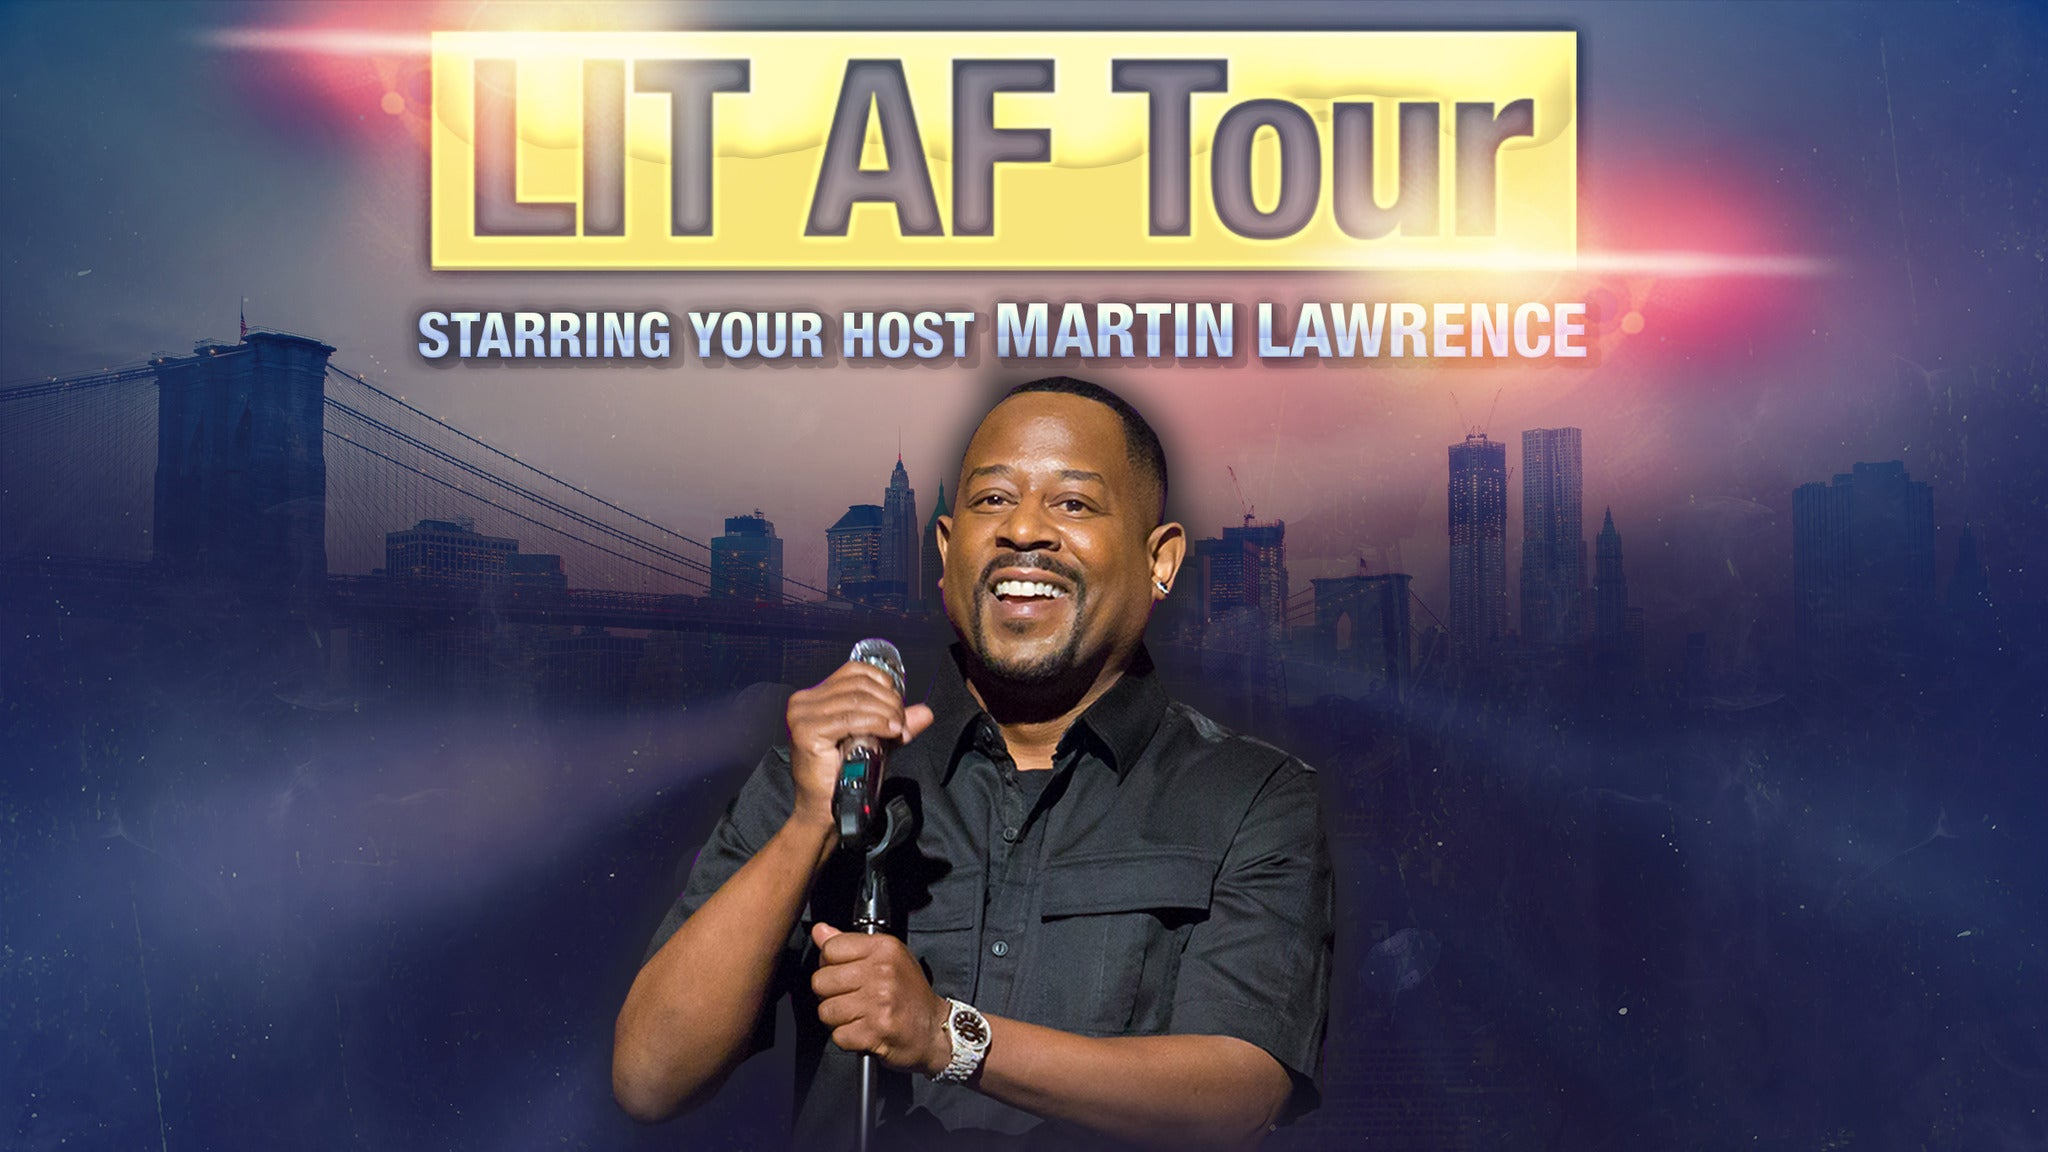 LIT AF Tour Hosted By Martin Lawrence at Verizon Arena